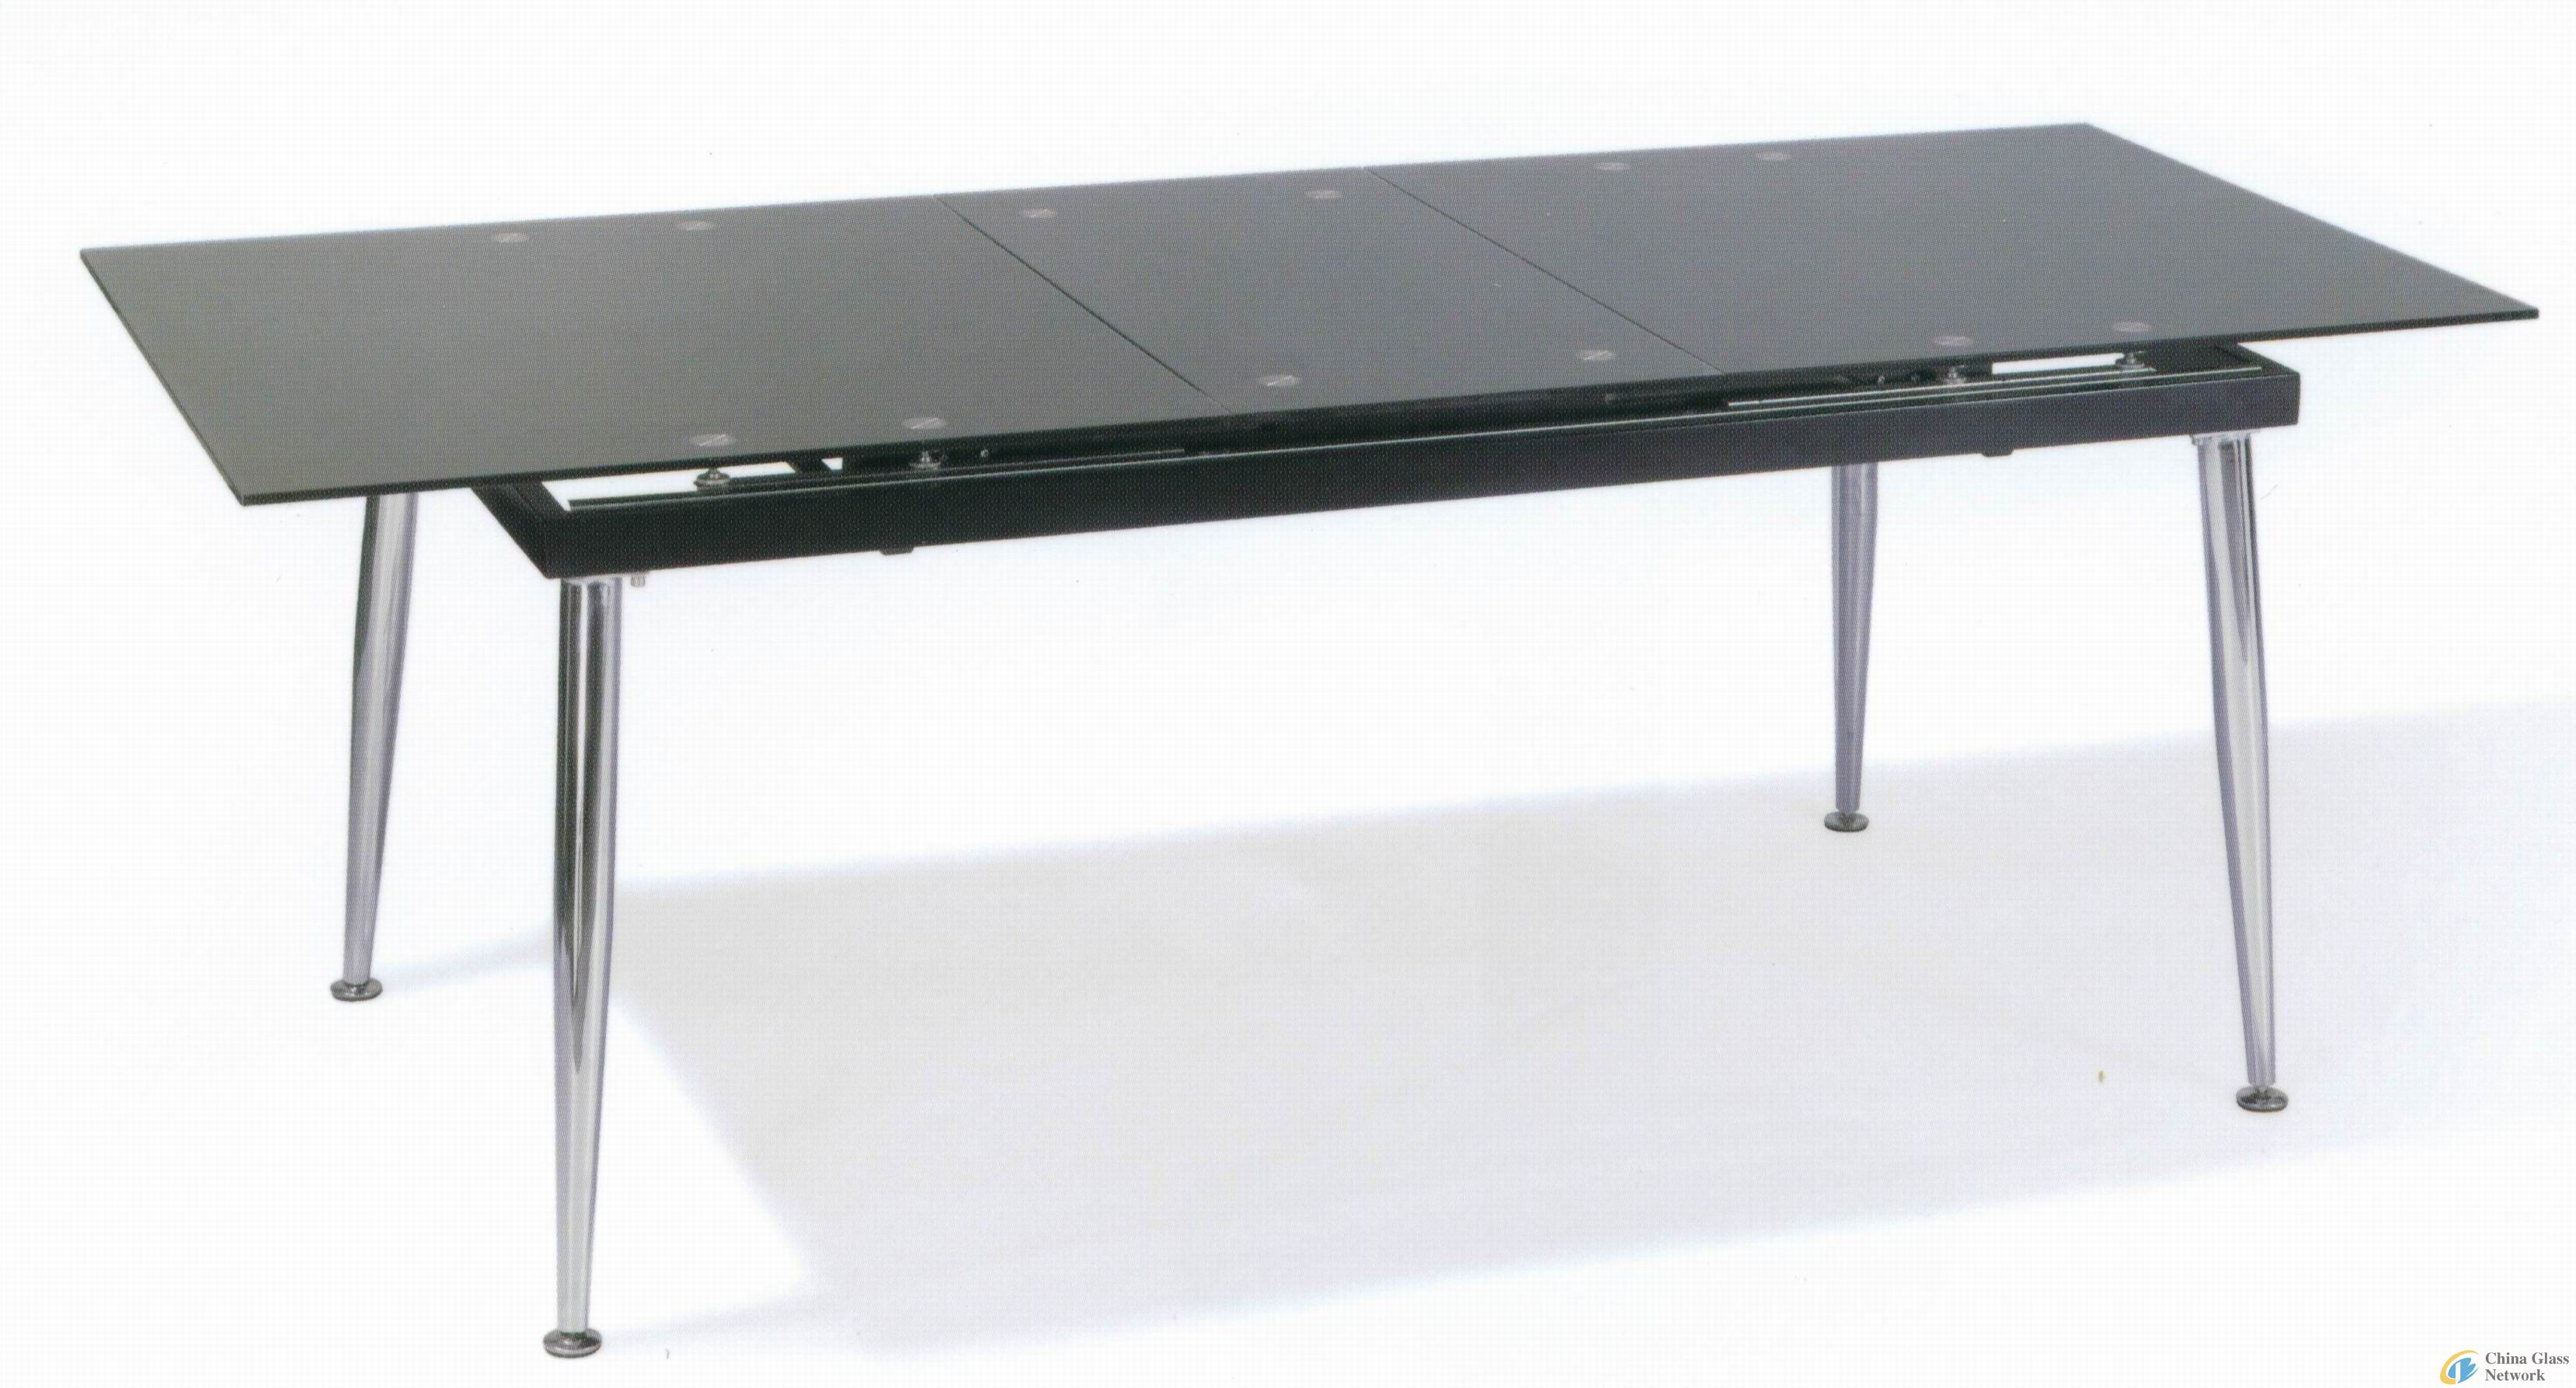 Extention table